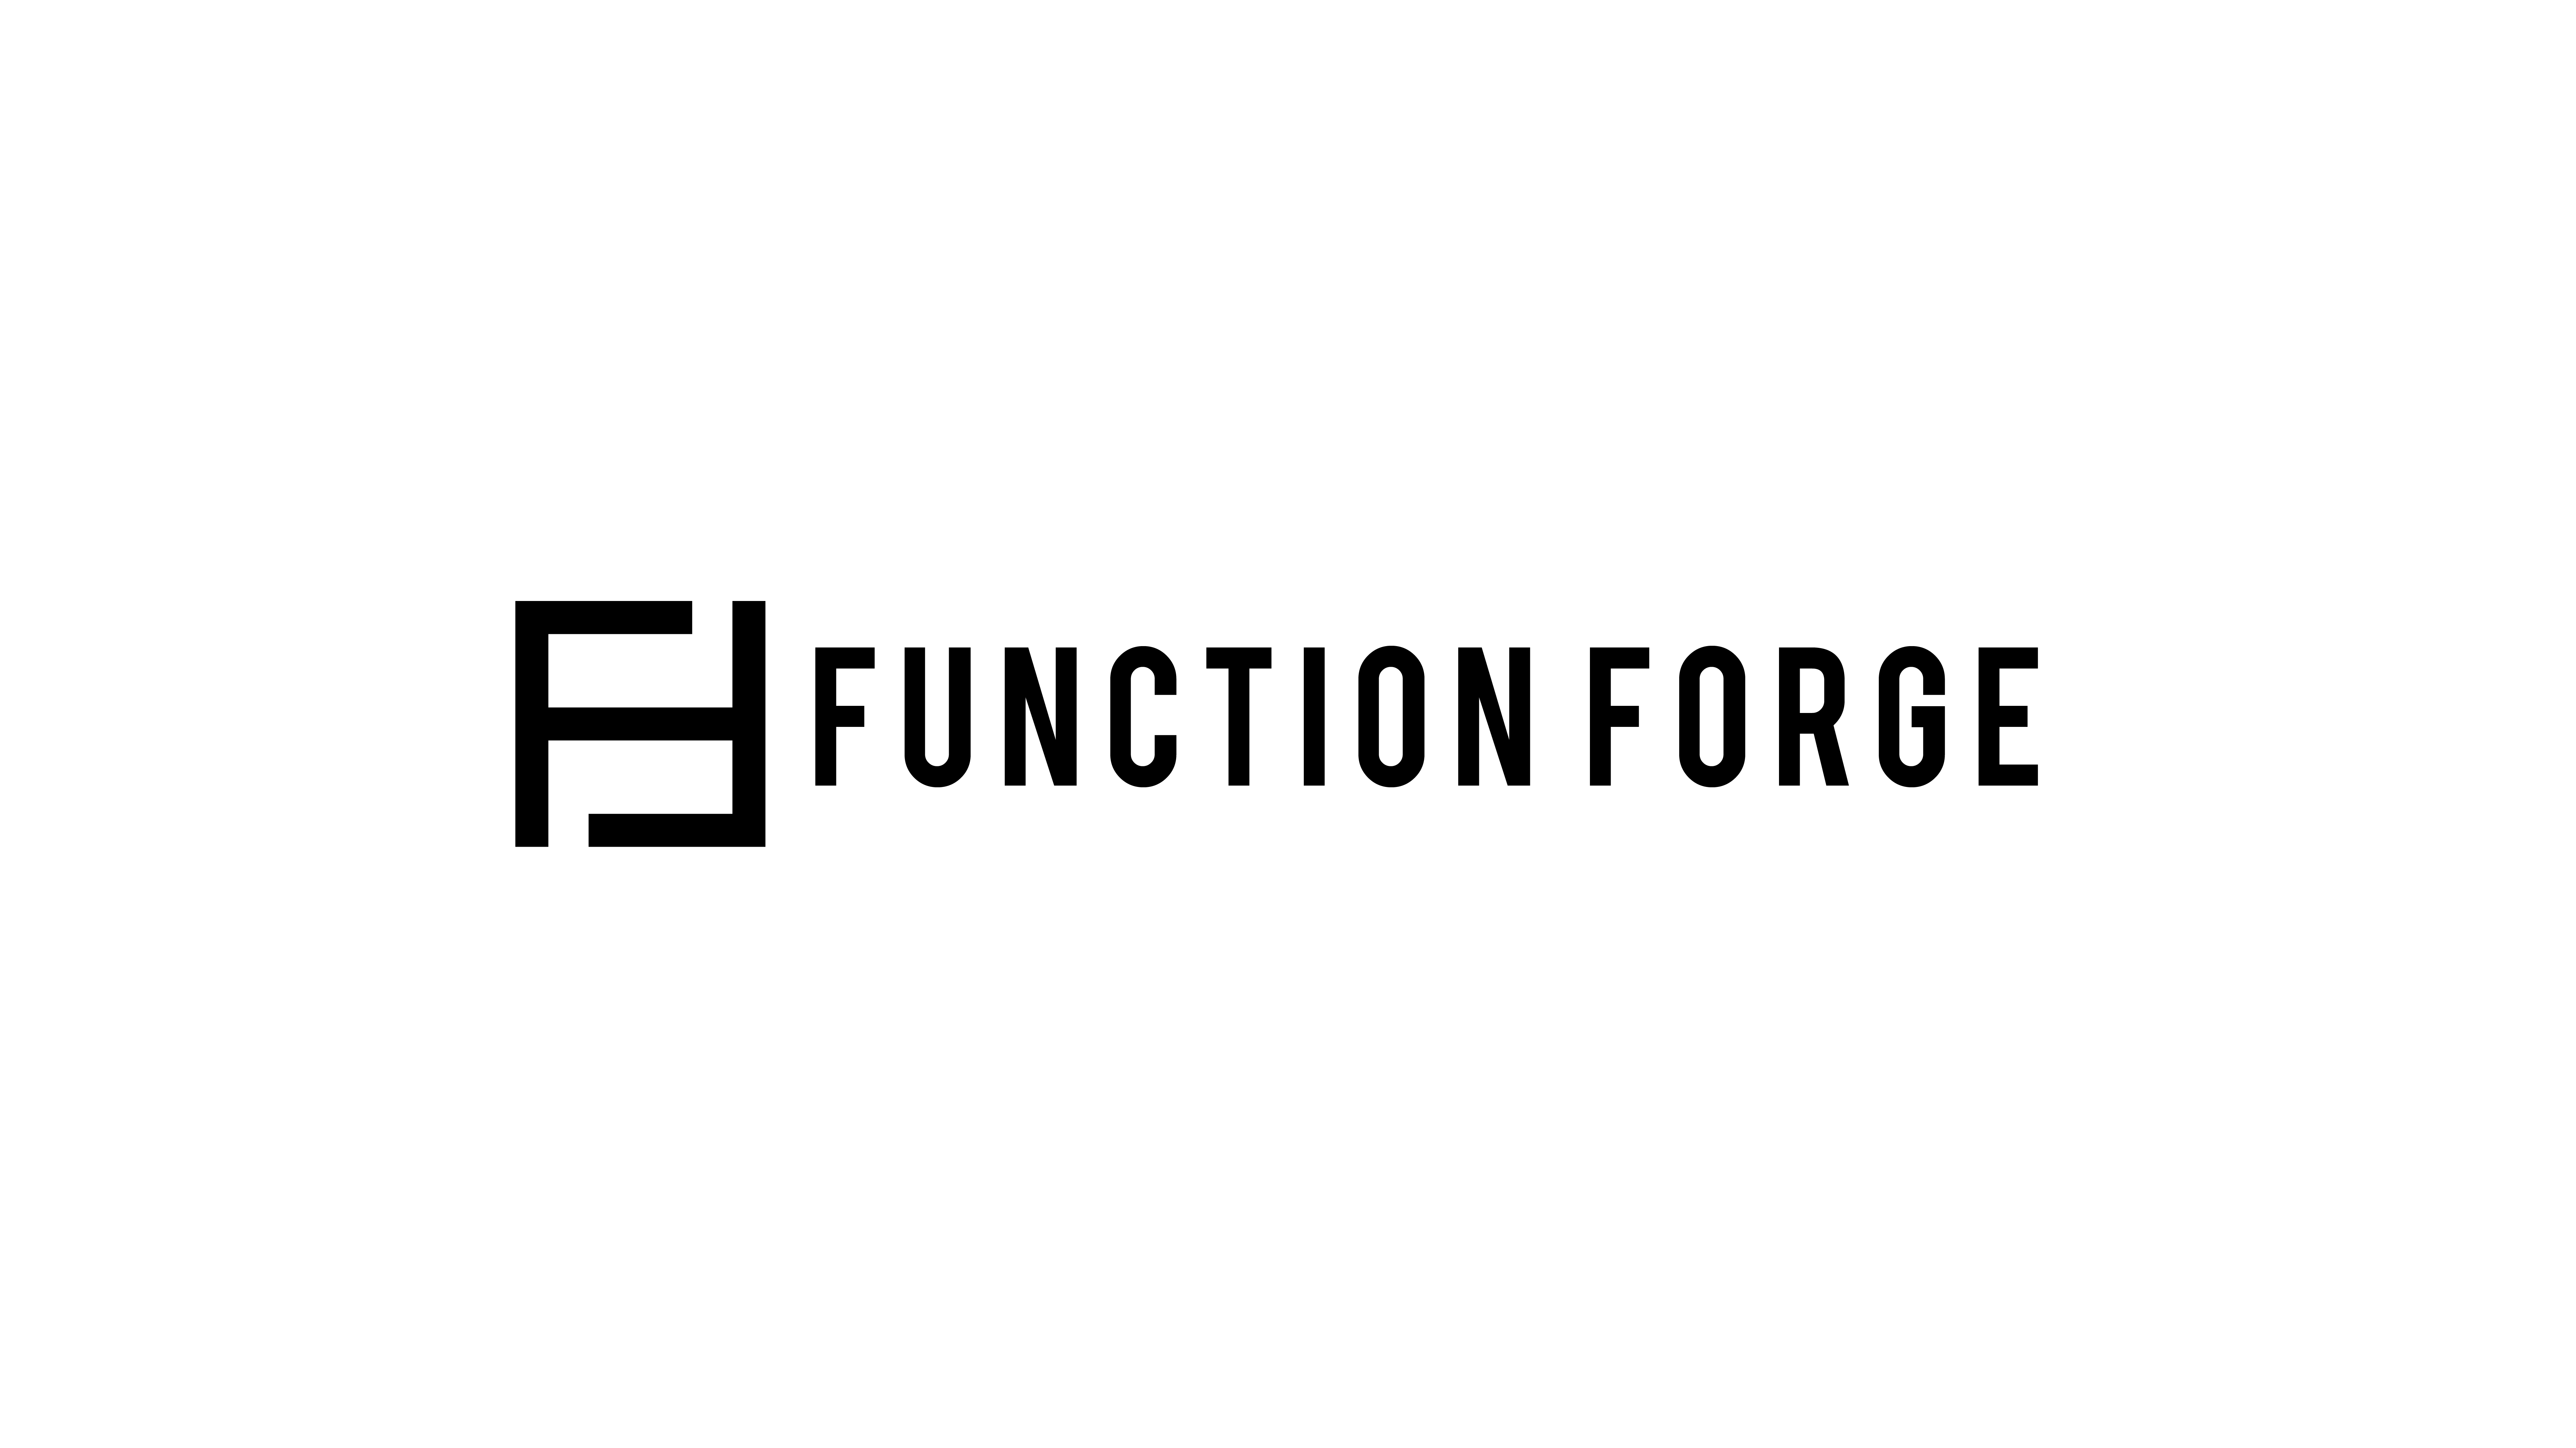 Function Forge